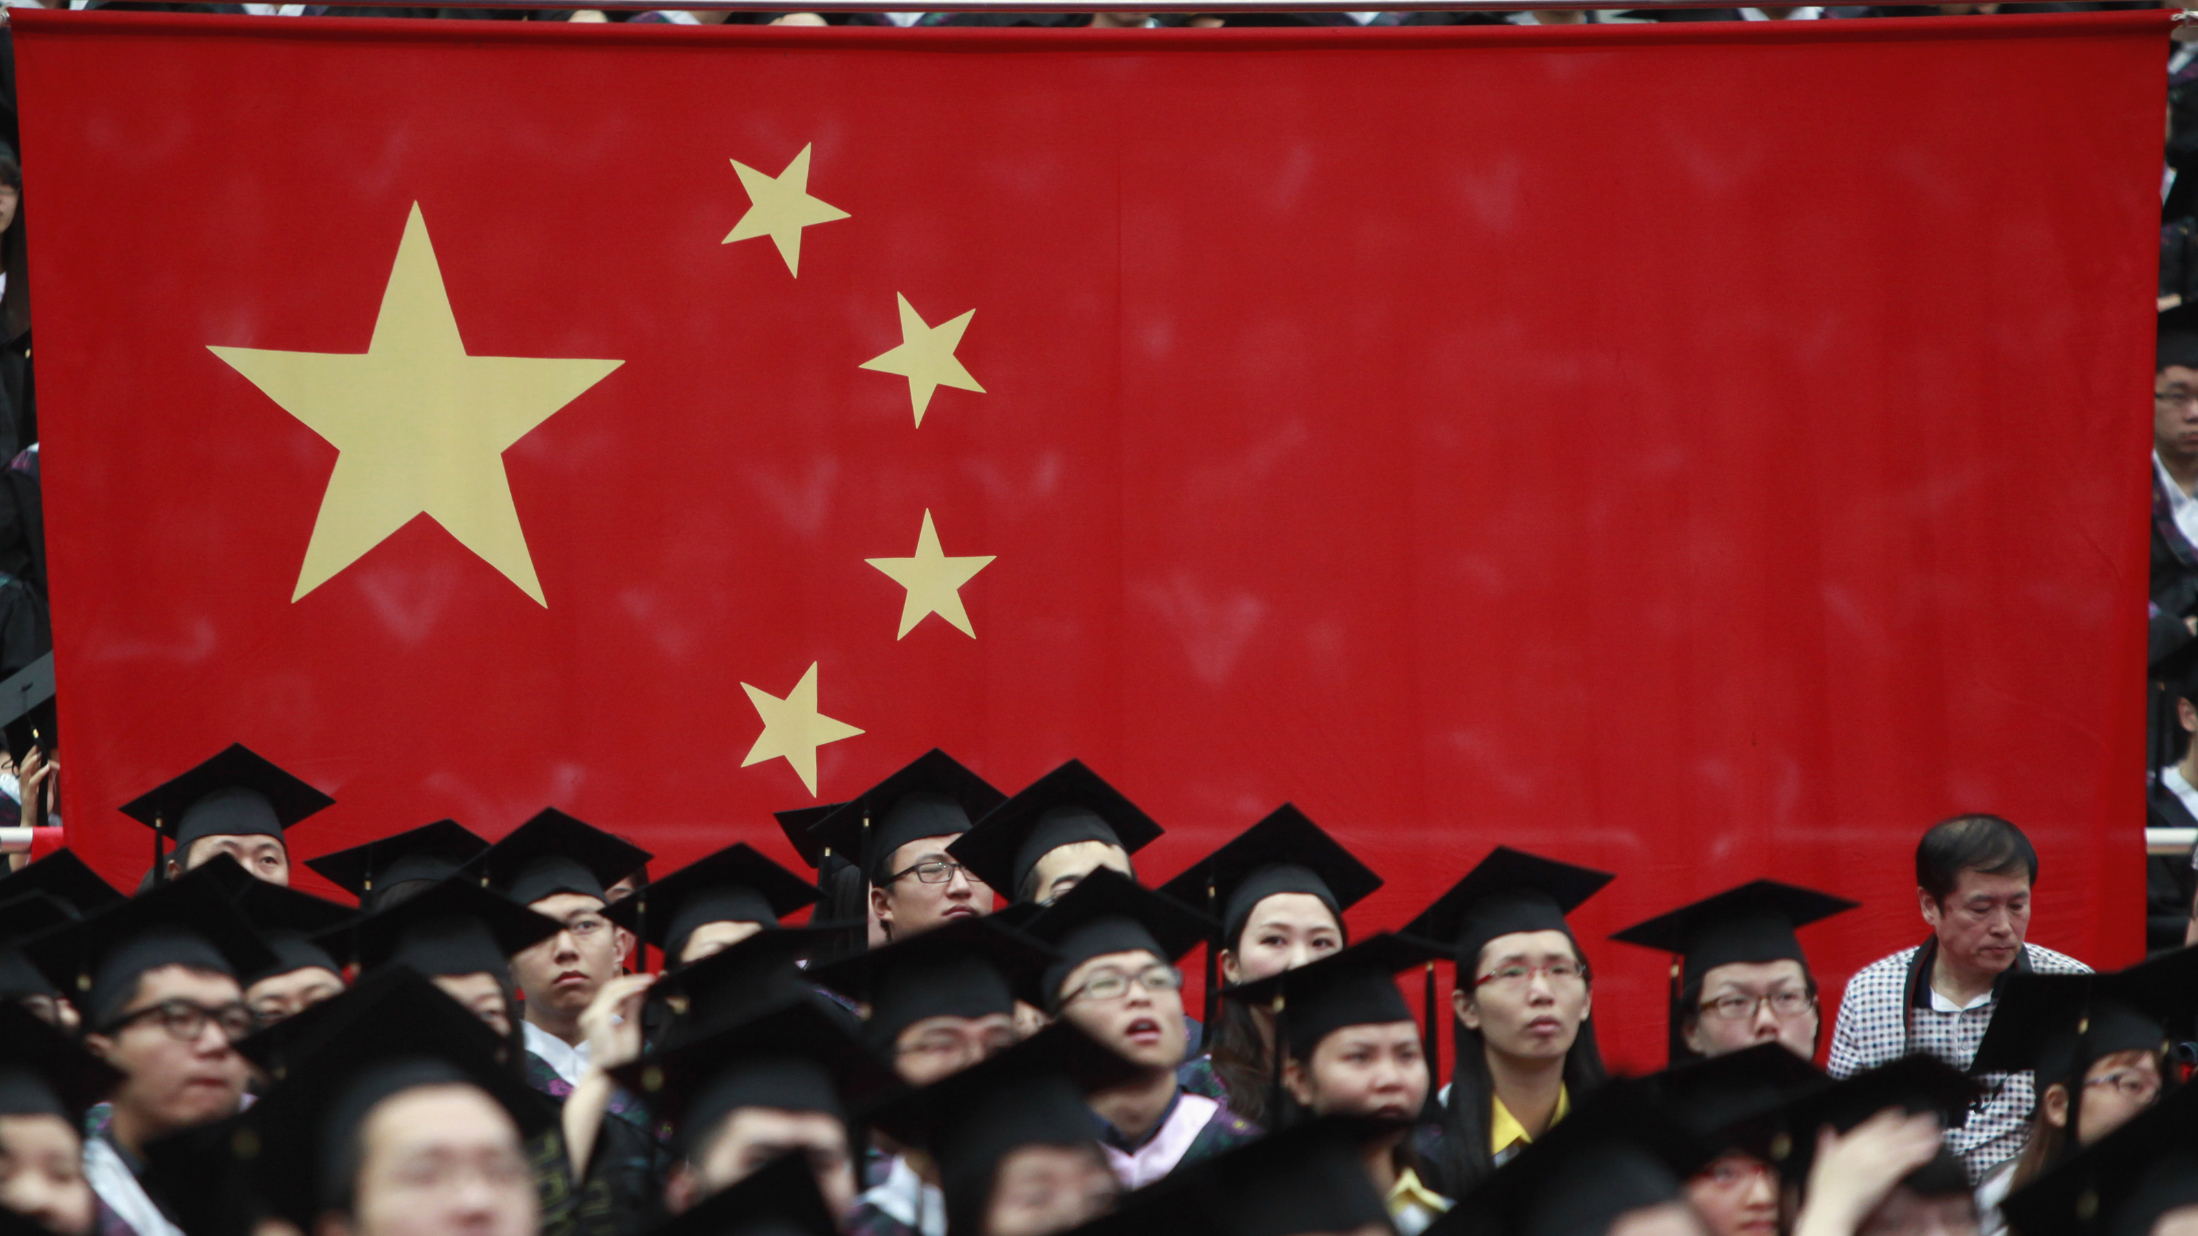 Graduates set next to the Chinese flag during a graduation ceremony at Fudan University in Shanghai June 28, 2013. A record high of 6.99 million students are expected to graduate from college this year which places severe pressure on their search for jobs, according to Xinhua News Agency. REUTERS/Aly Song